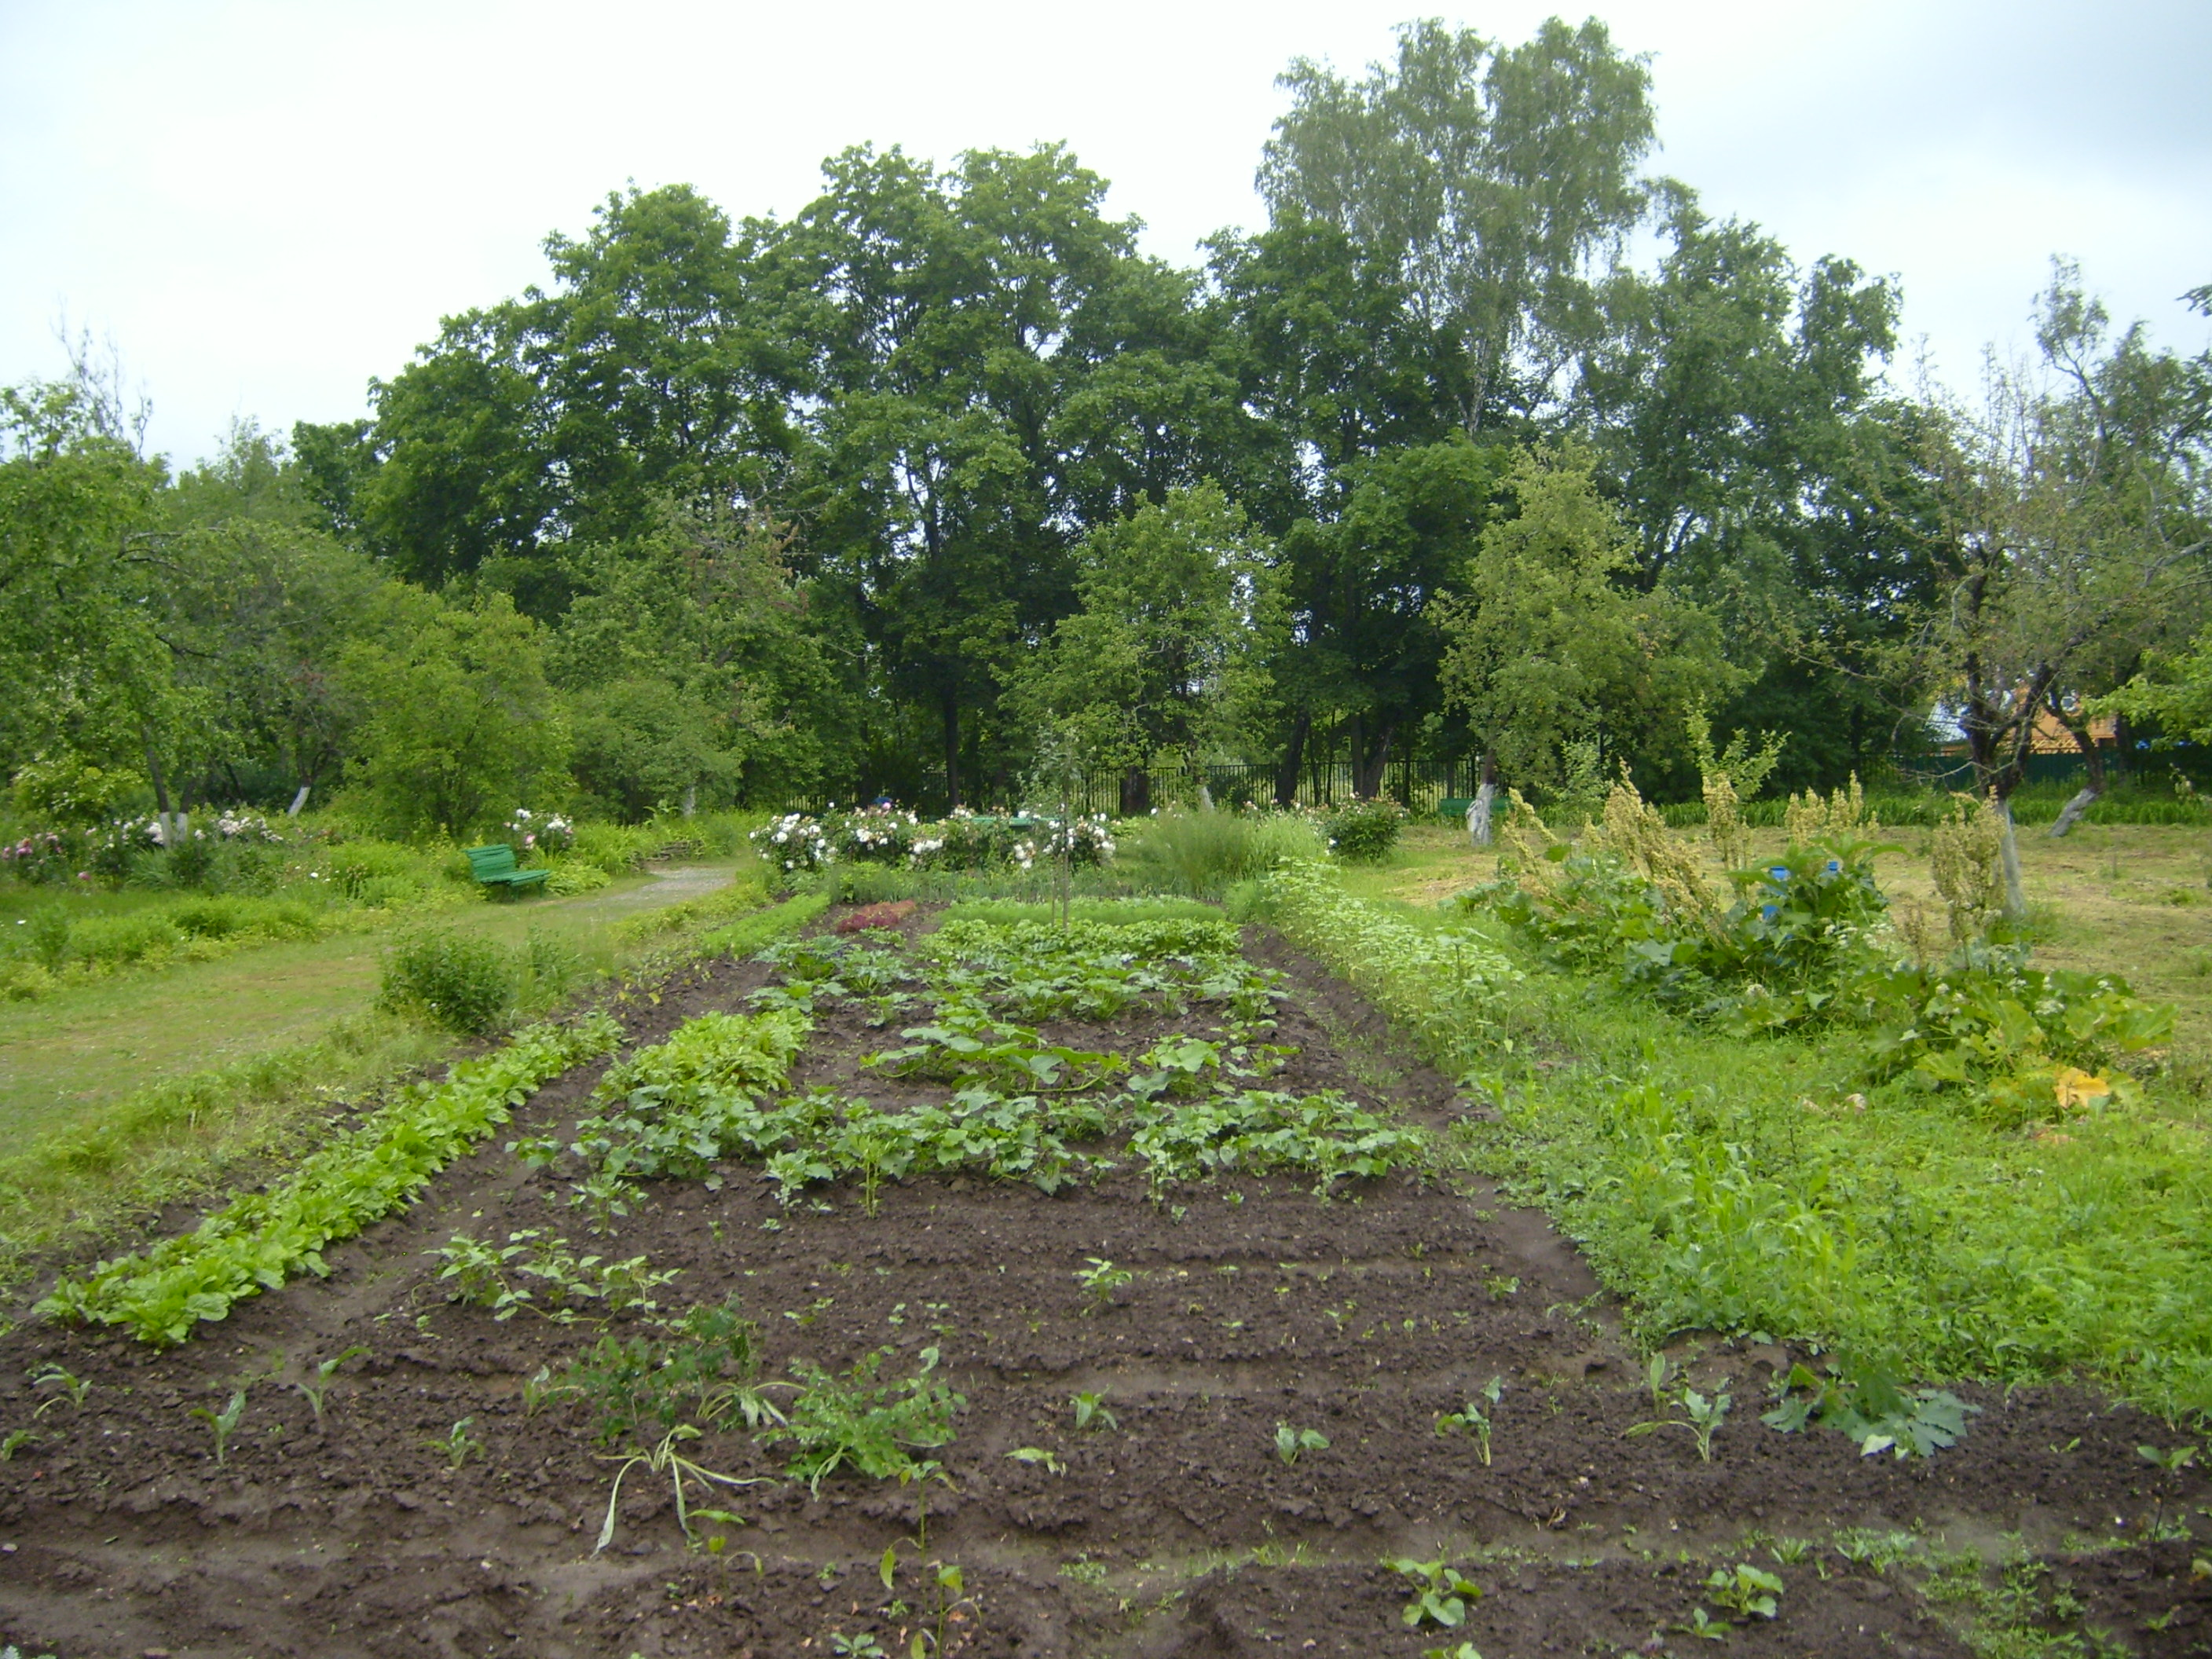 Country vegetable gardens - Chekhov Was Very Proud Of His Vegetable And Flower Garden